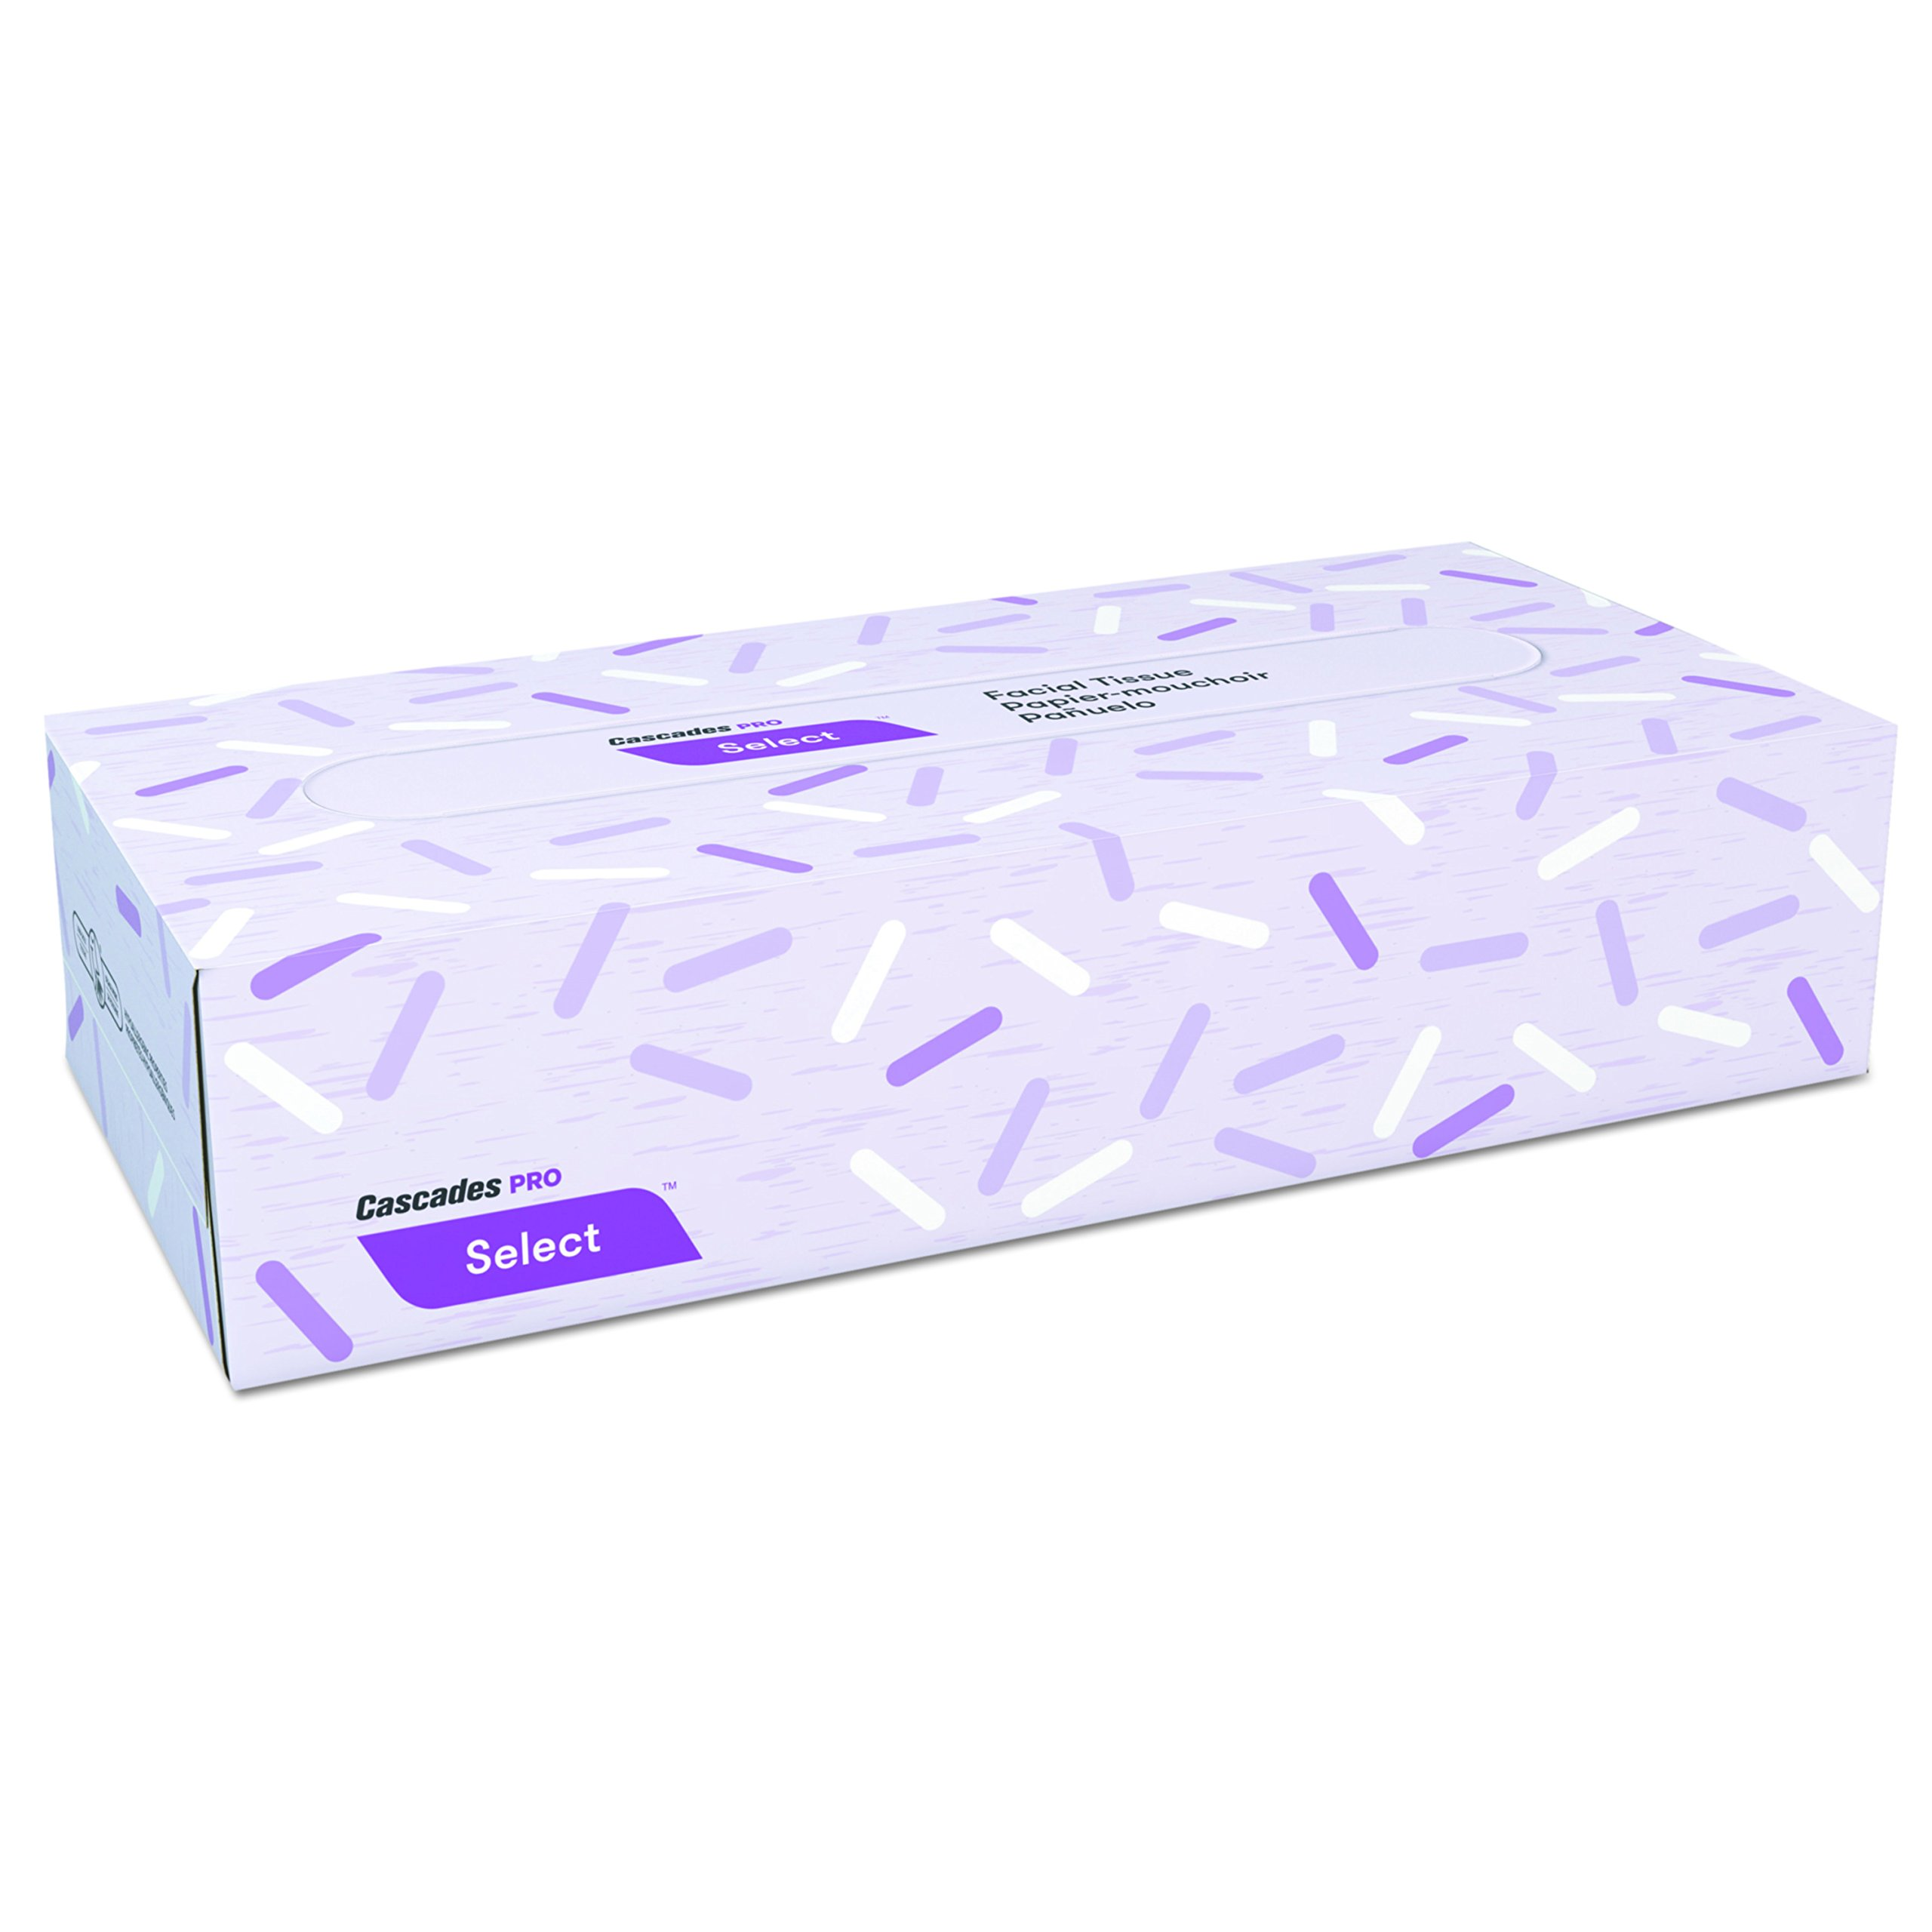 Cascades F150 PRO Select Flat Box Facial Tissue, 2-Ply, White, 8'' x 7 3/8'', Box of 100 (Case of 30 Boxes)